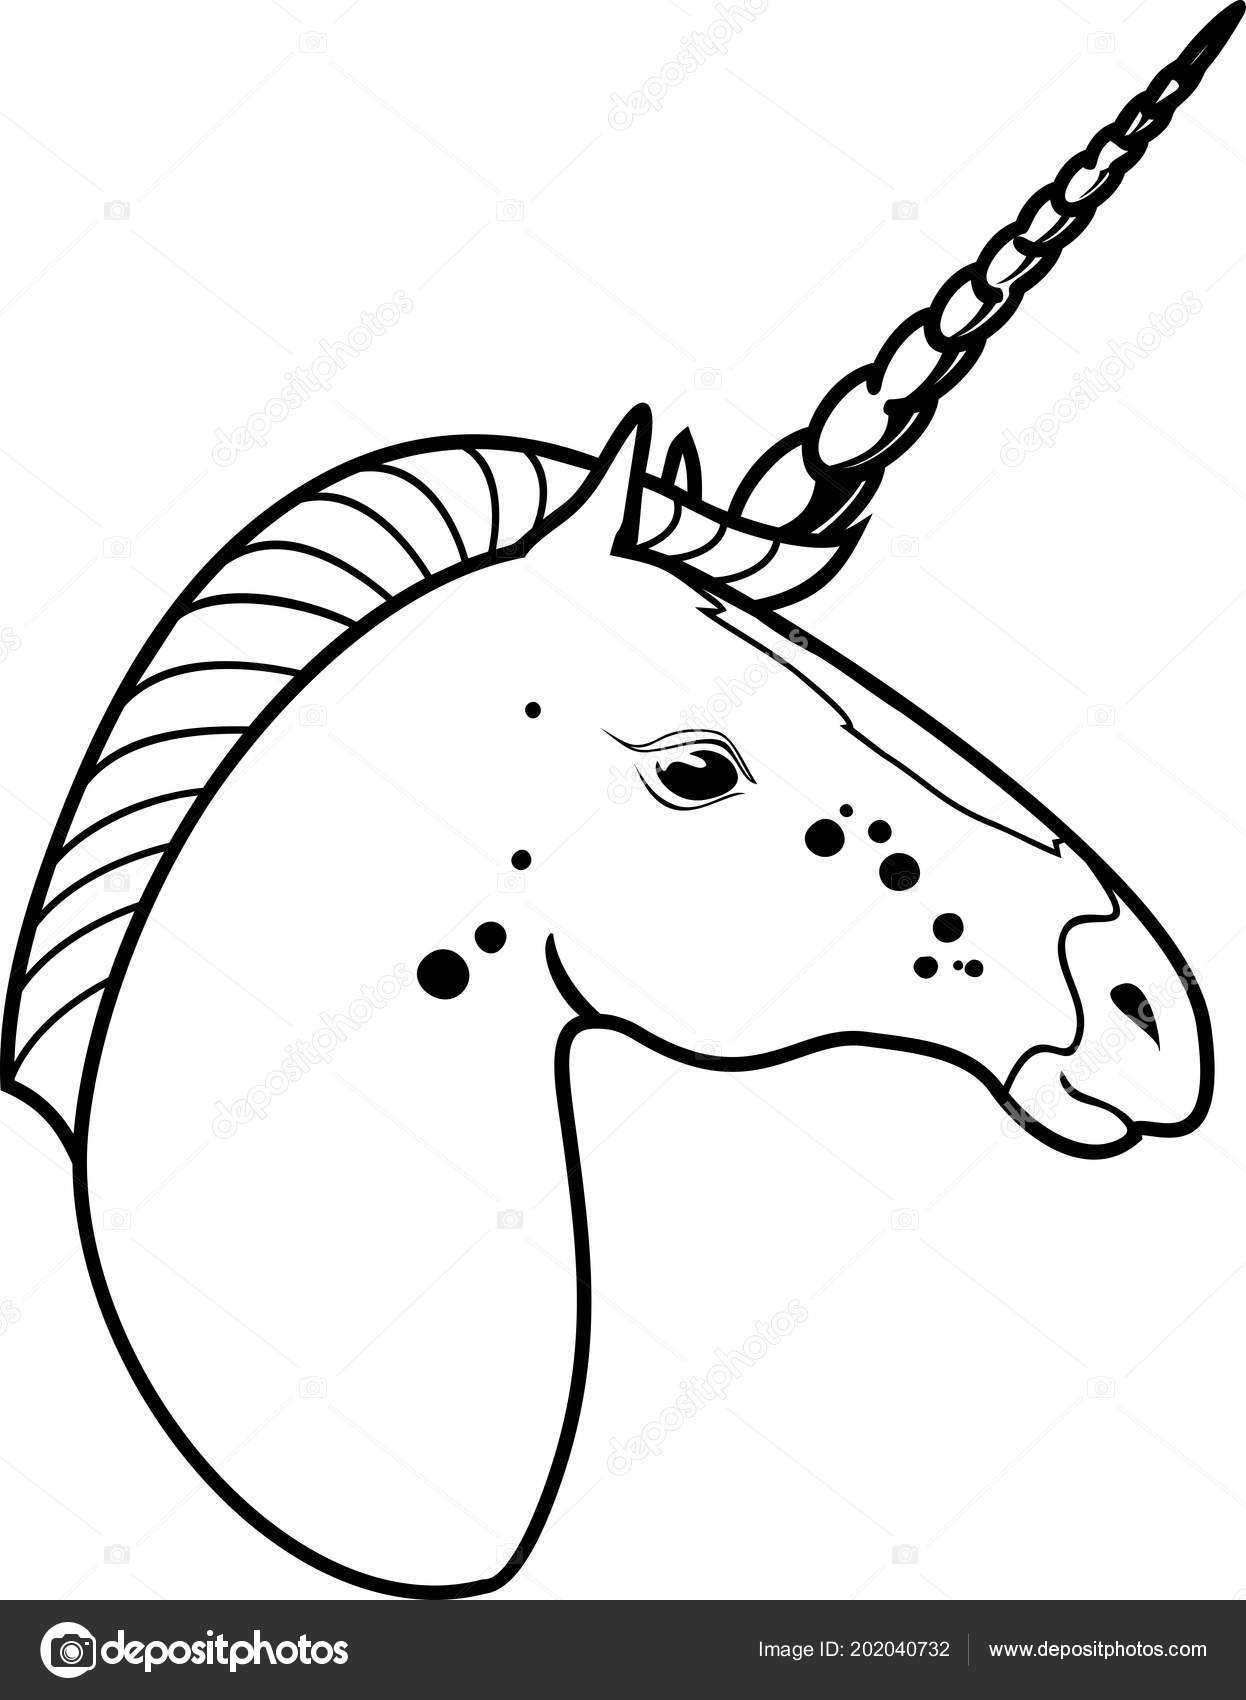 Unicorn head coloring page stock vector